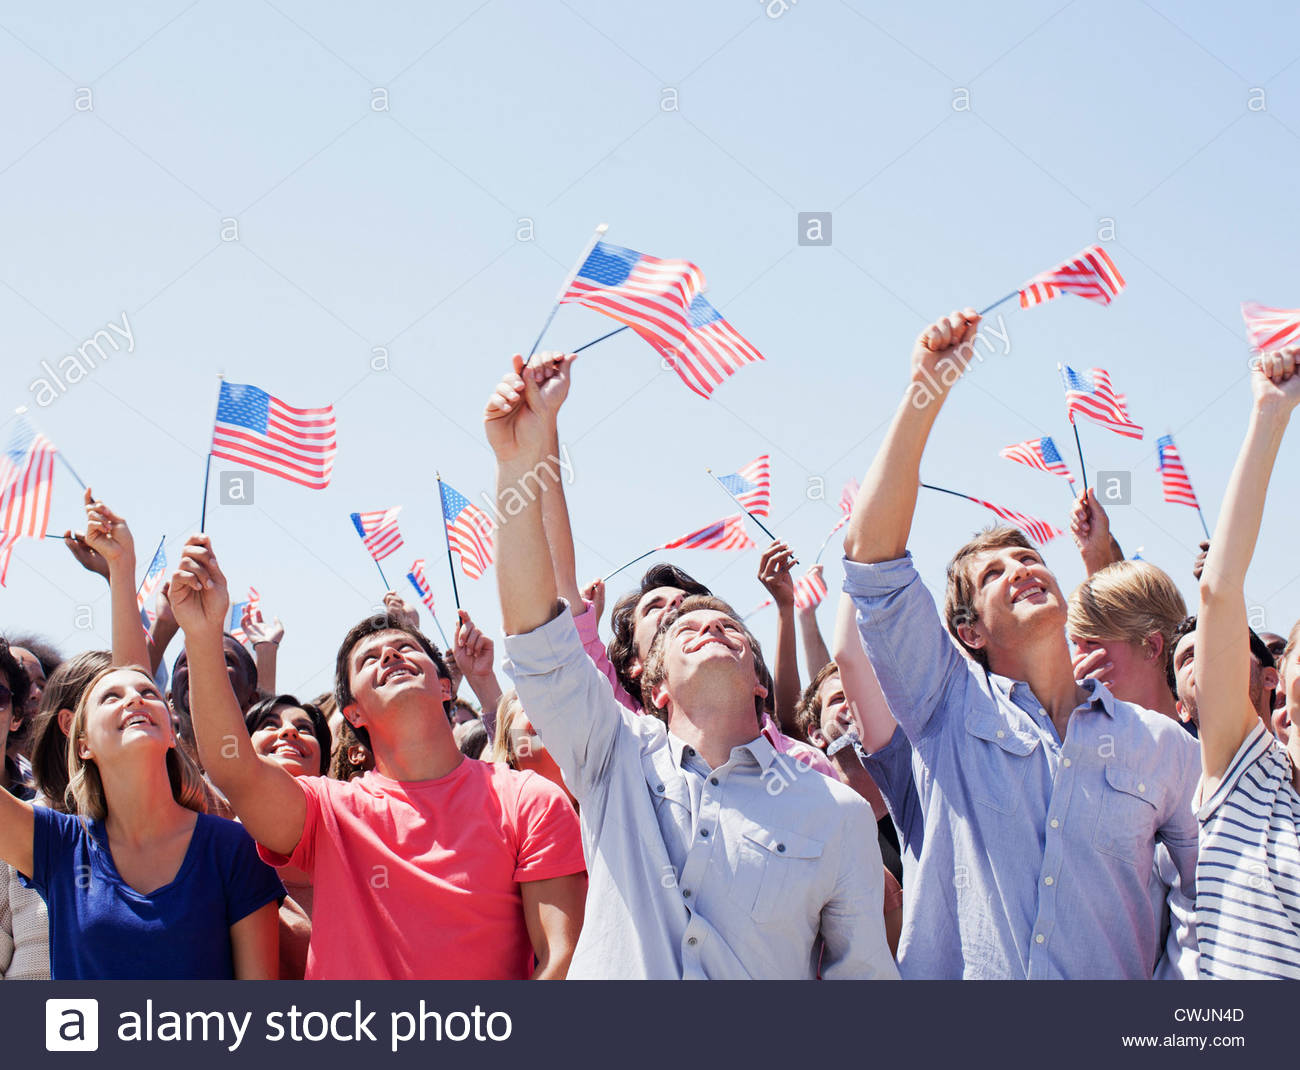 Smiling people waving American flags and looking up in ...